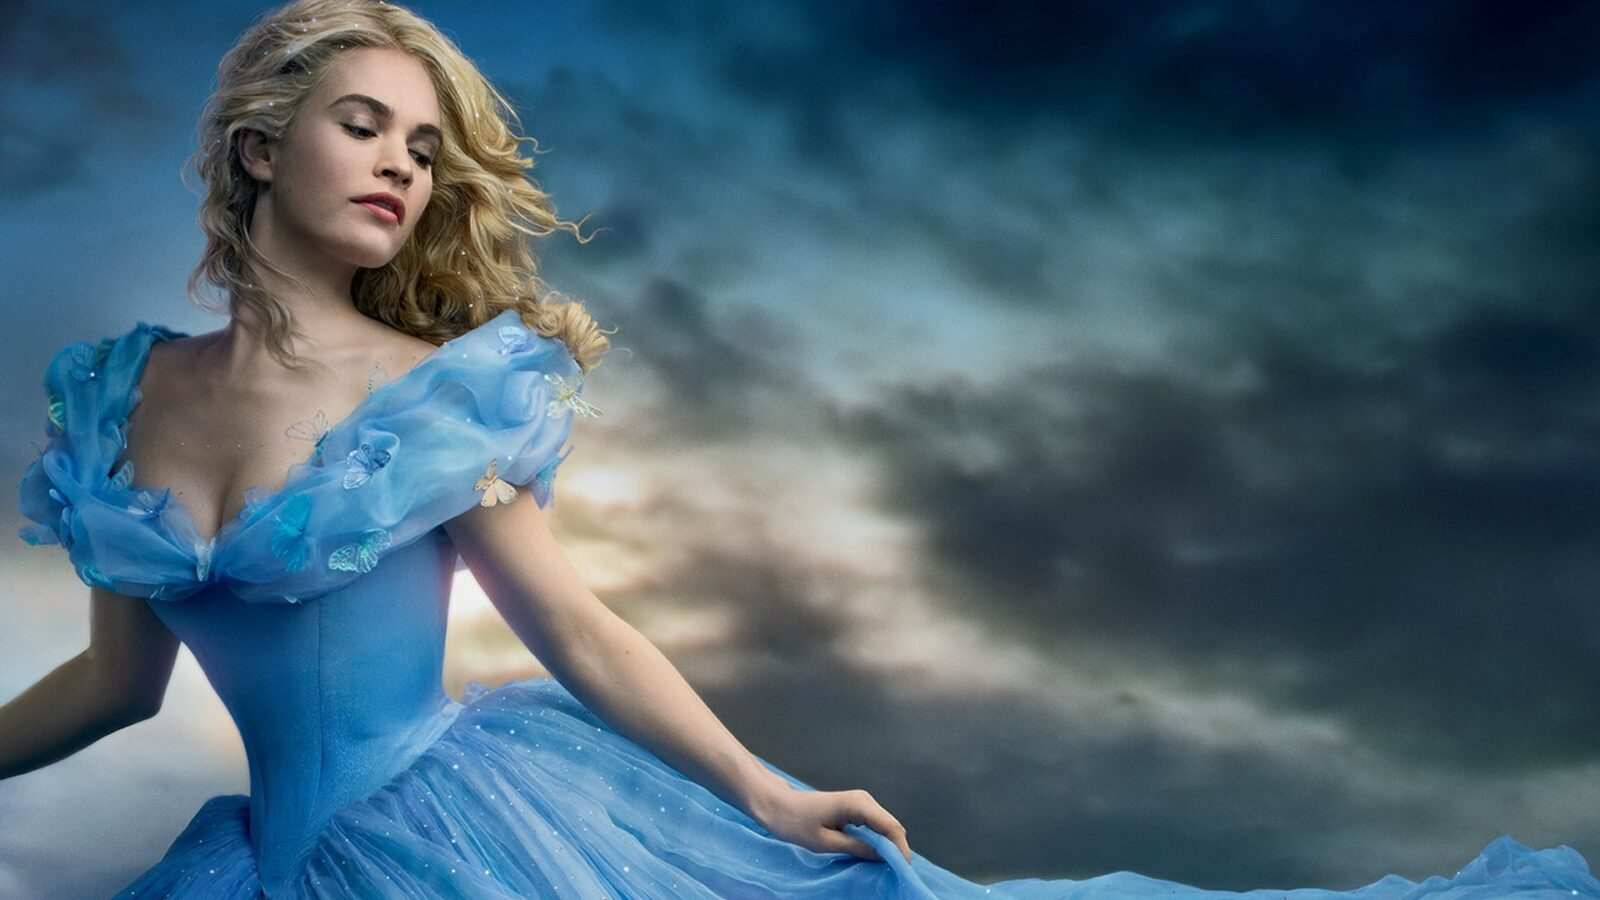 Lily James as Cinderella backgrounds